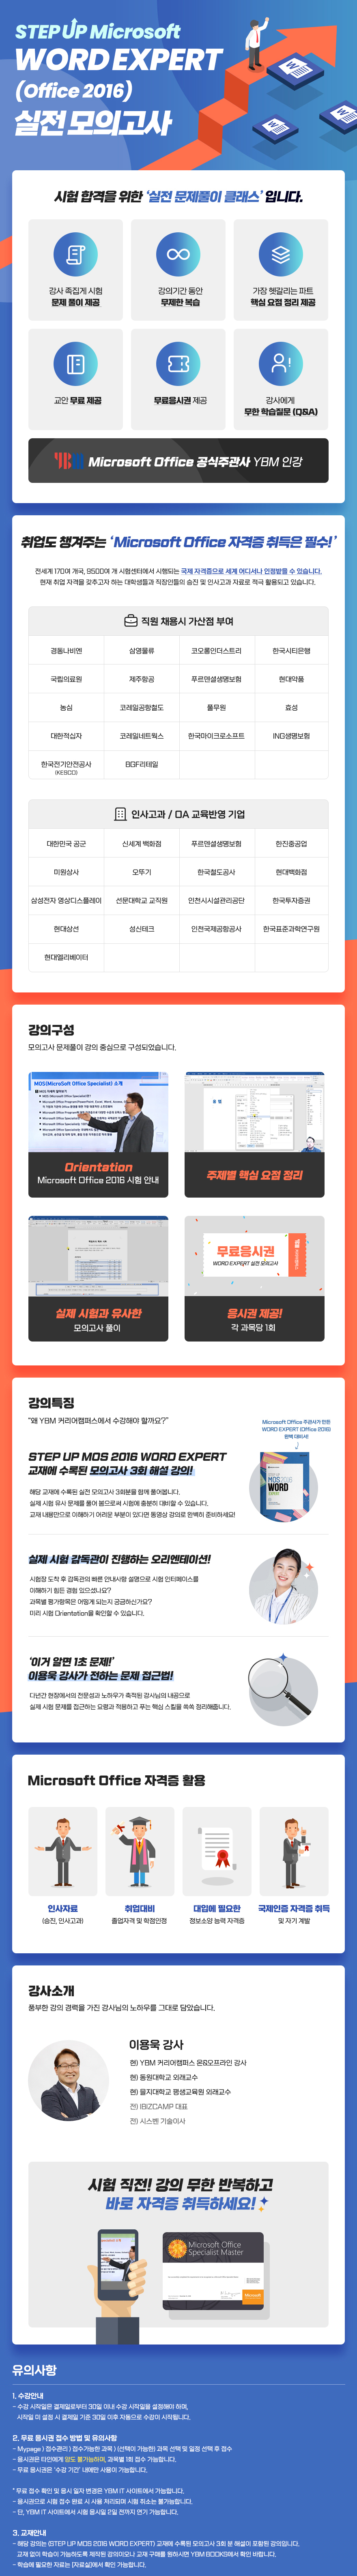 STEP UP Microsoft Word Expert (Office 2016) 실전 모의고사